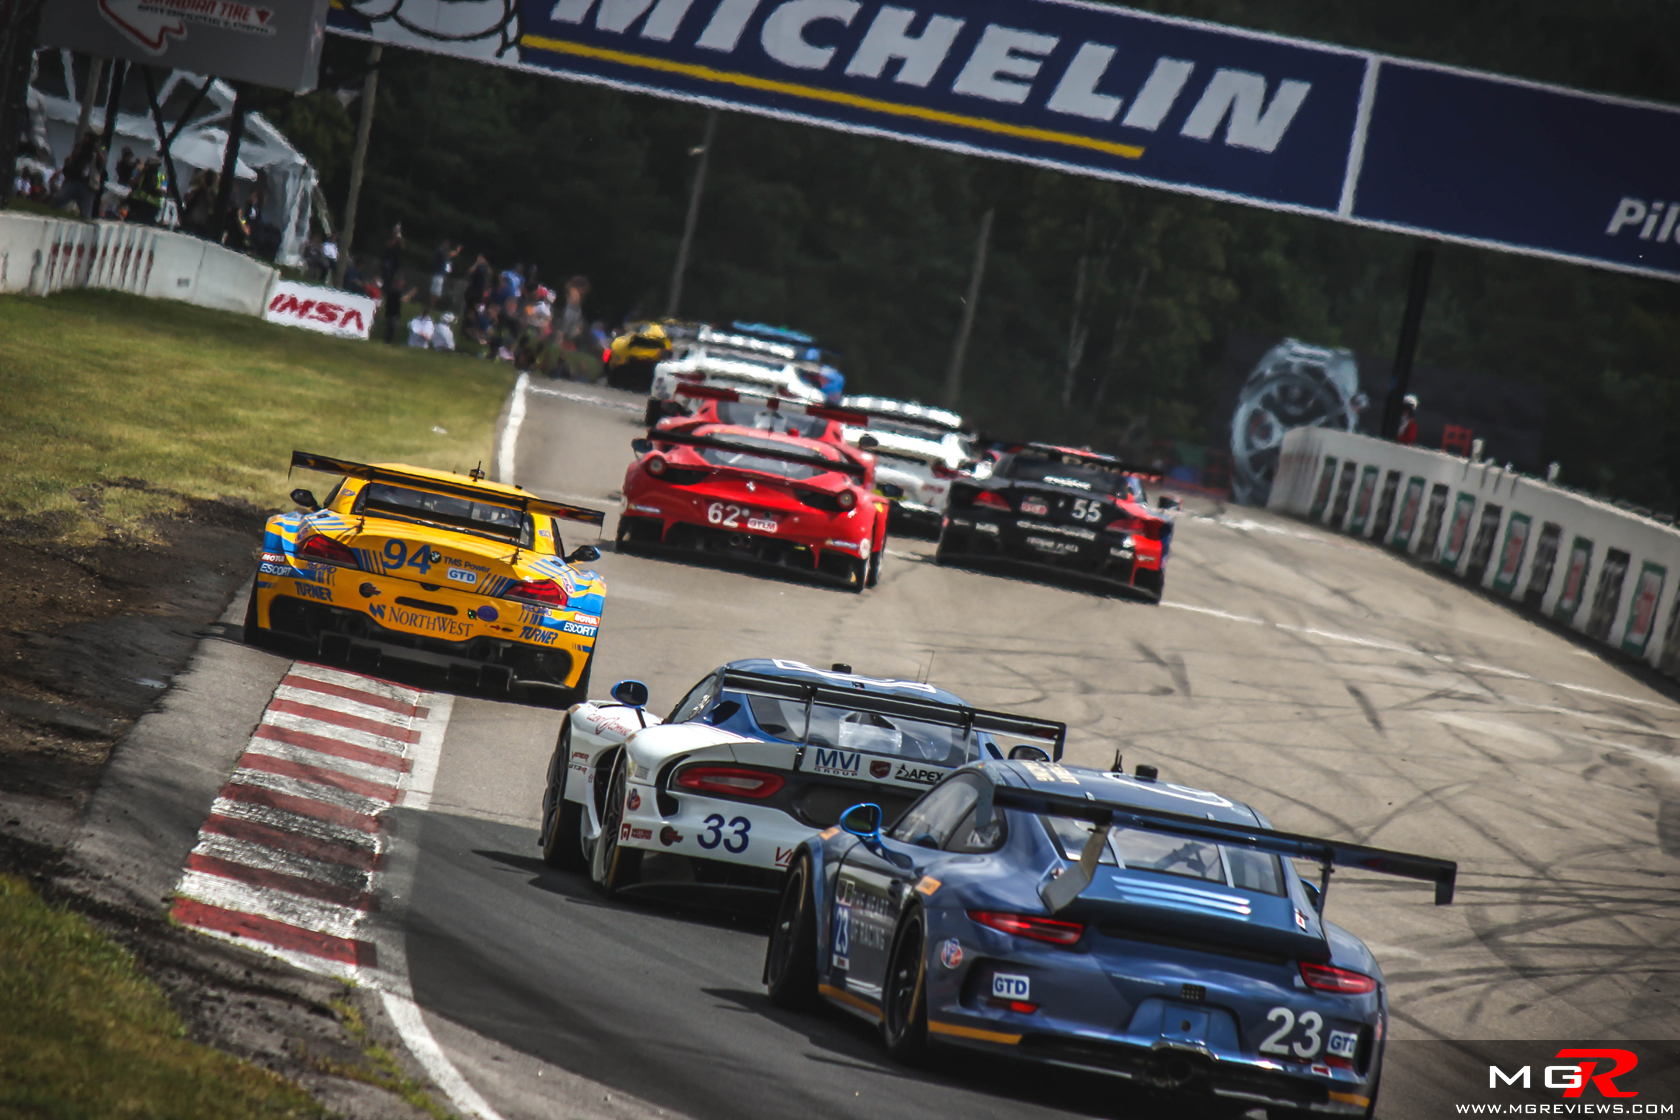 photos 2014 imsa tudor united sports car series part 2 \u2013 warm up2014 tudor united sports car series 242 copy